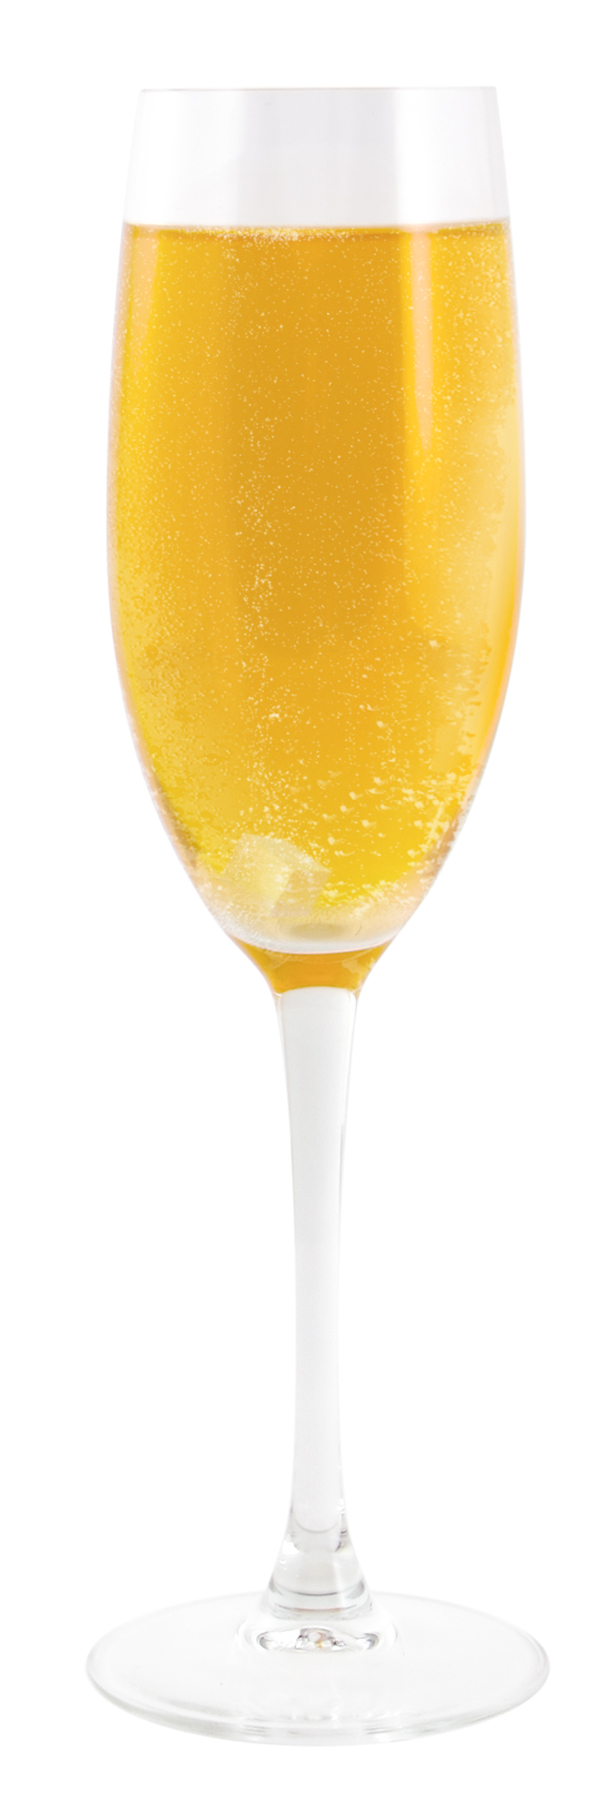 peach bellini print recipe ingredients 2 ripe peaches 1 tablespoon ...